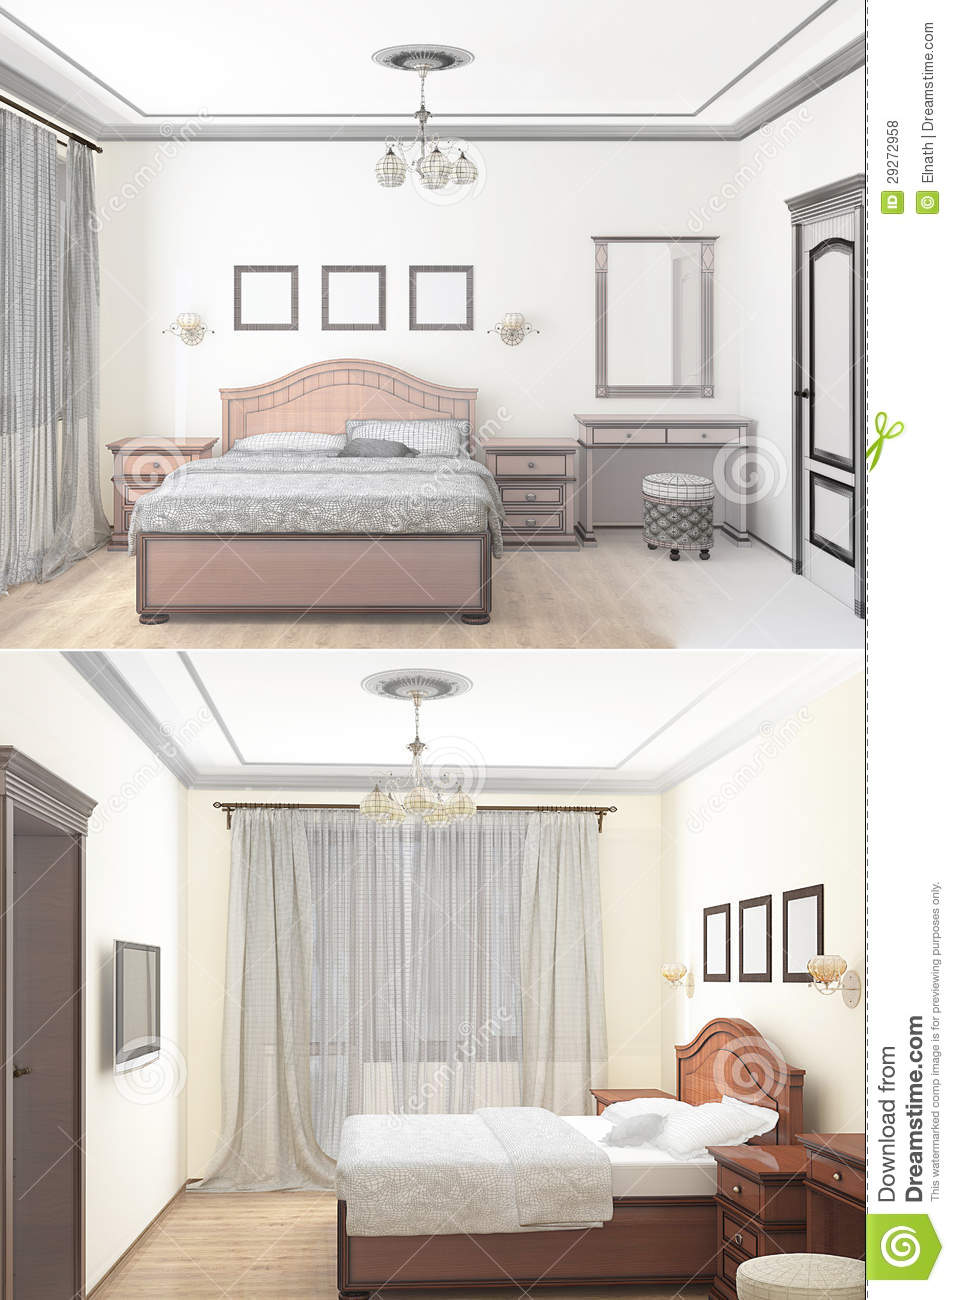 3d Sketch Of An Interior Bedroom Royalty Free Stock Photos